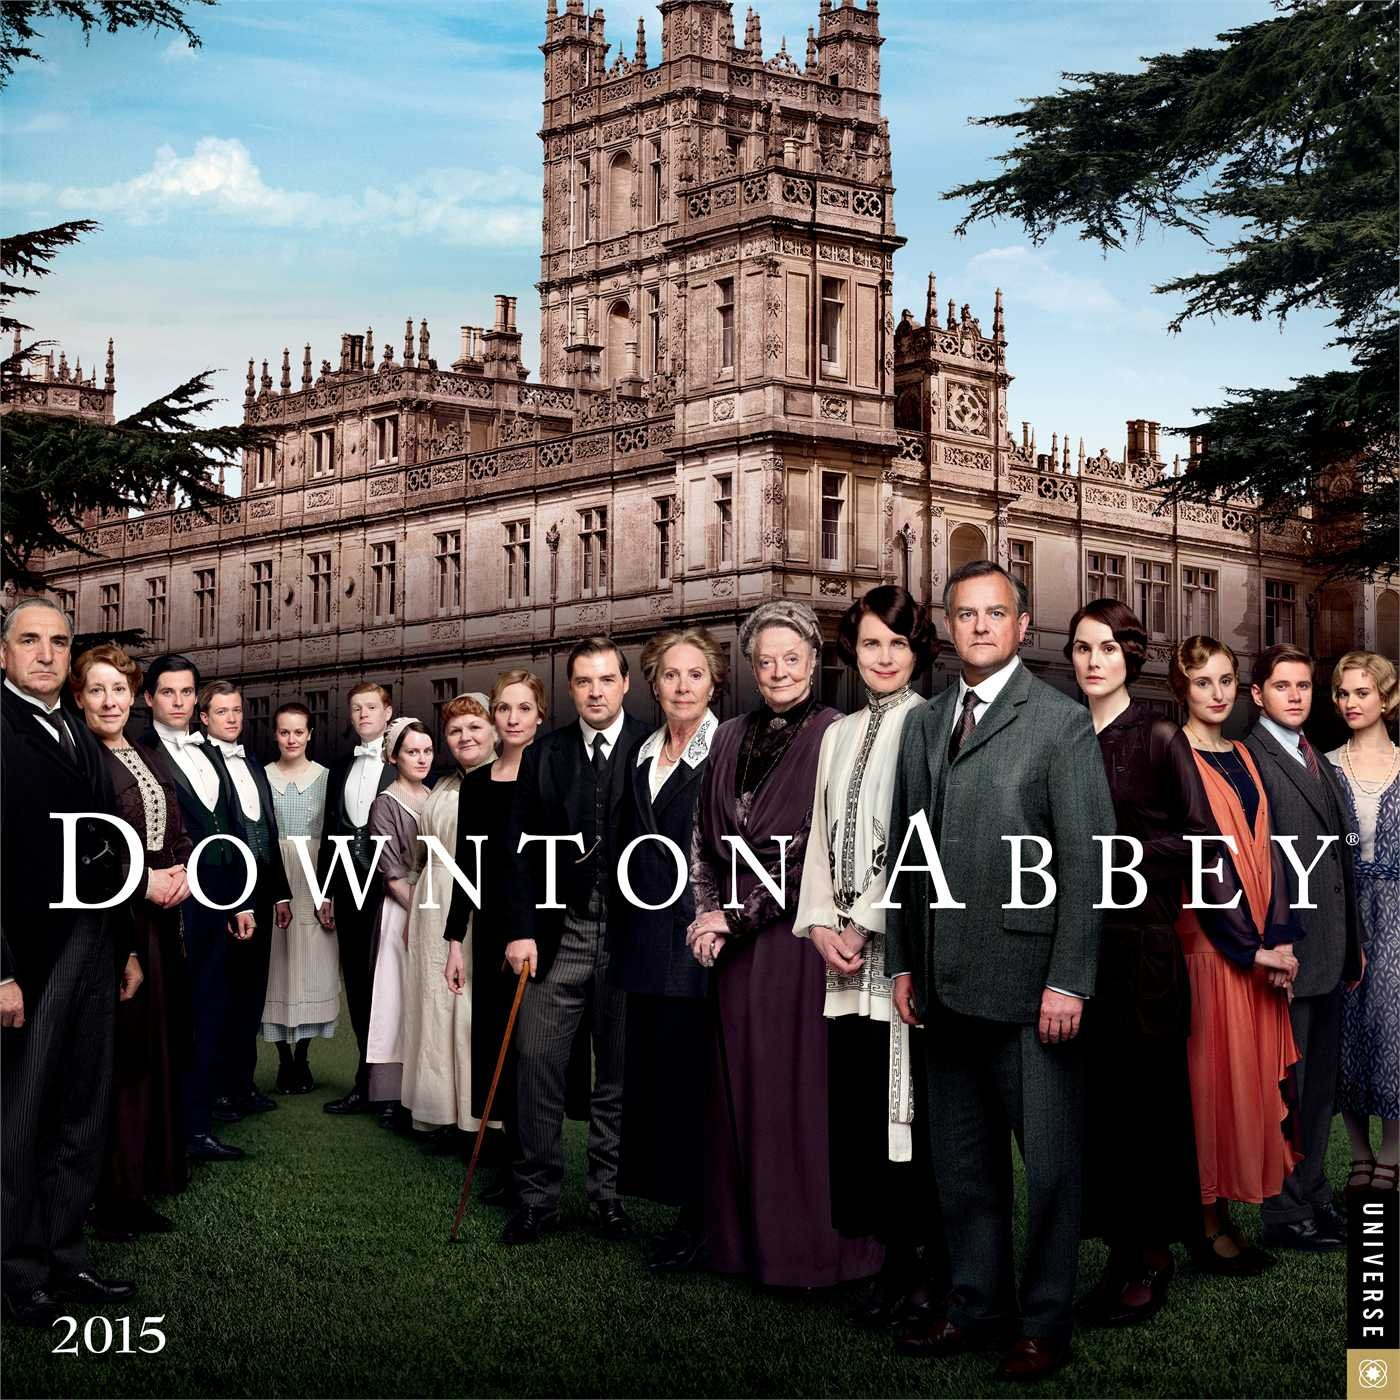 Downton Abbey 2015 Wall Calendar